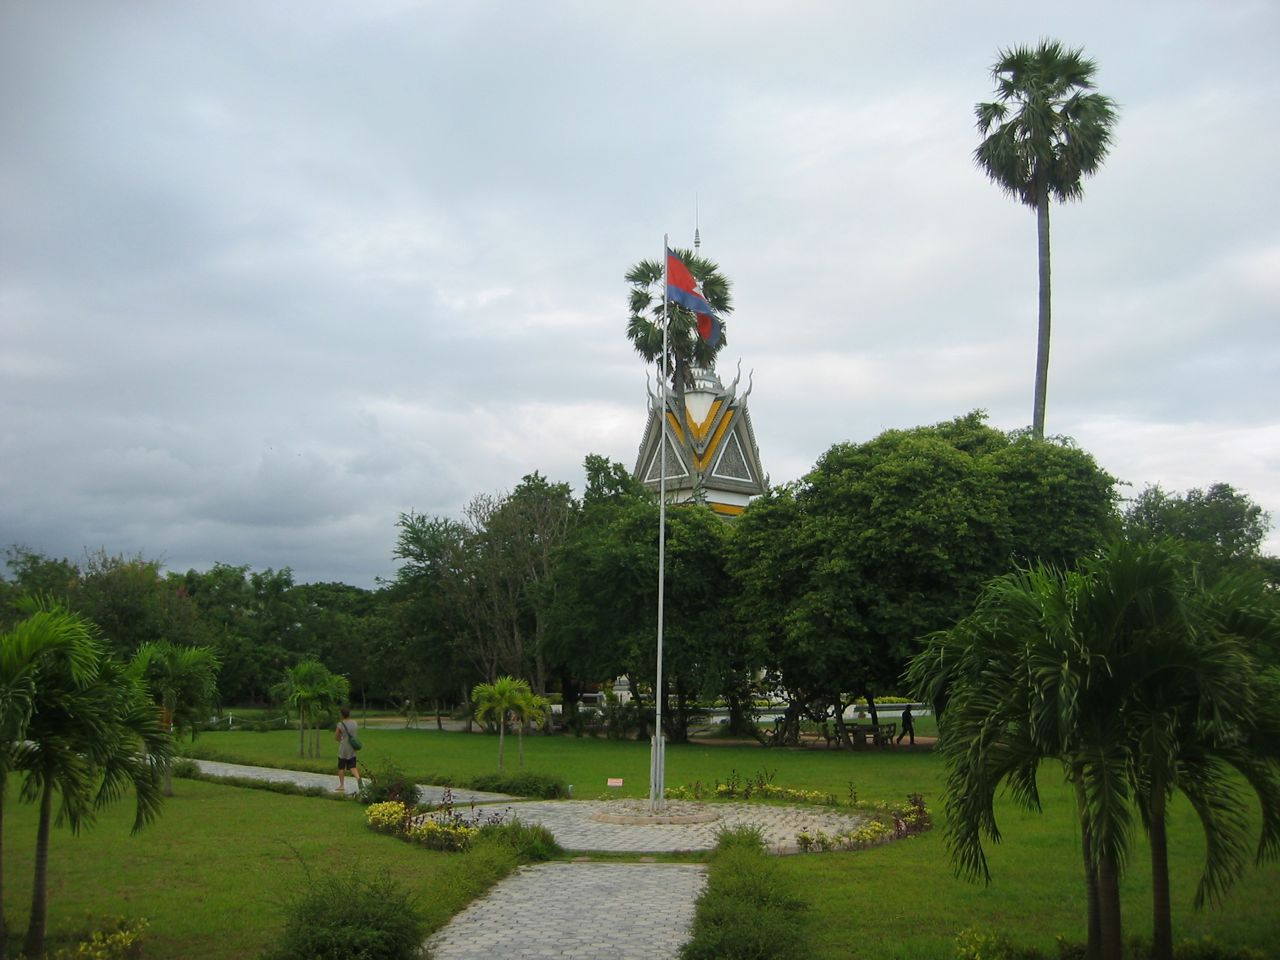 The Cambodian flag flies in front of a tree blocking the central monument structure.